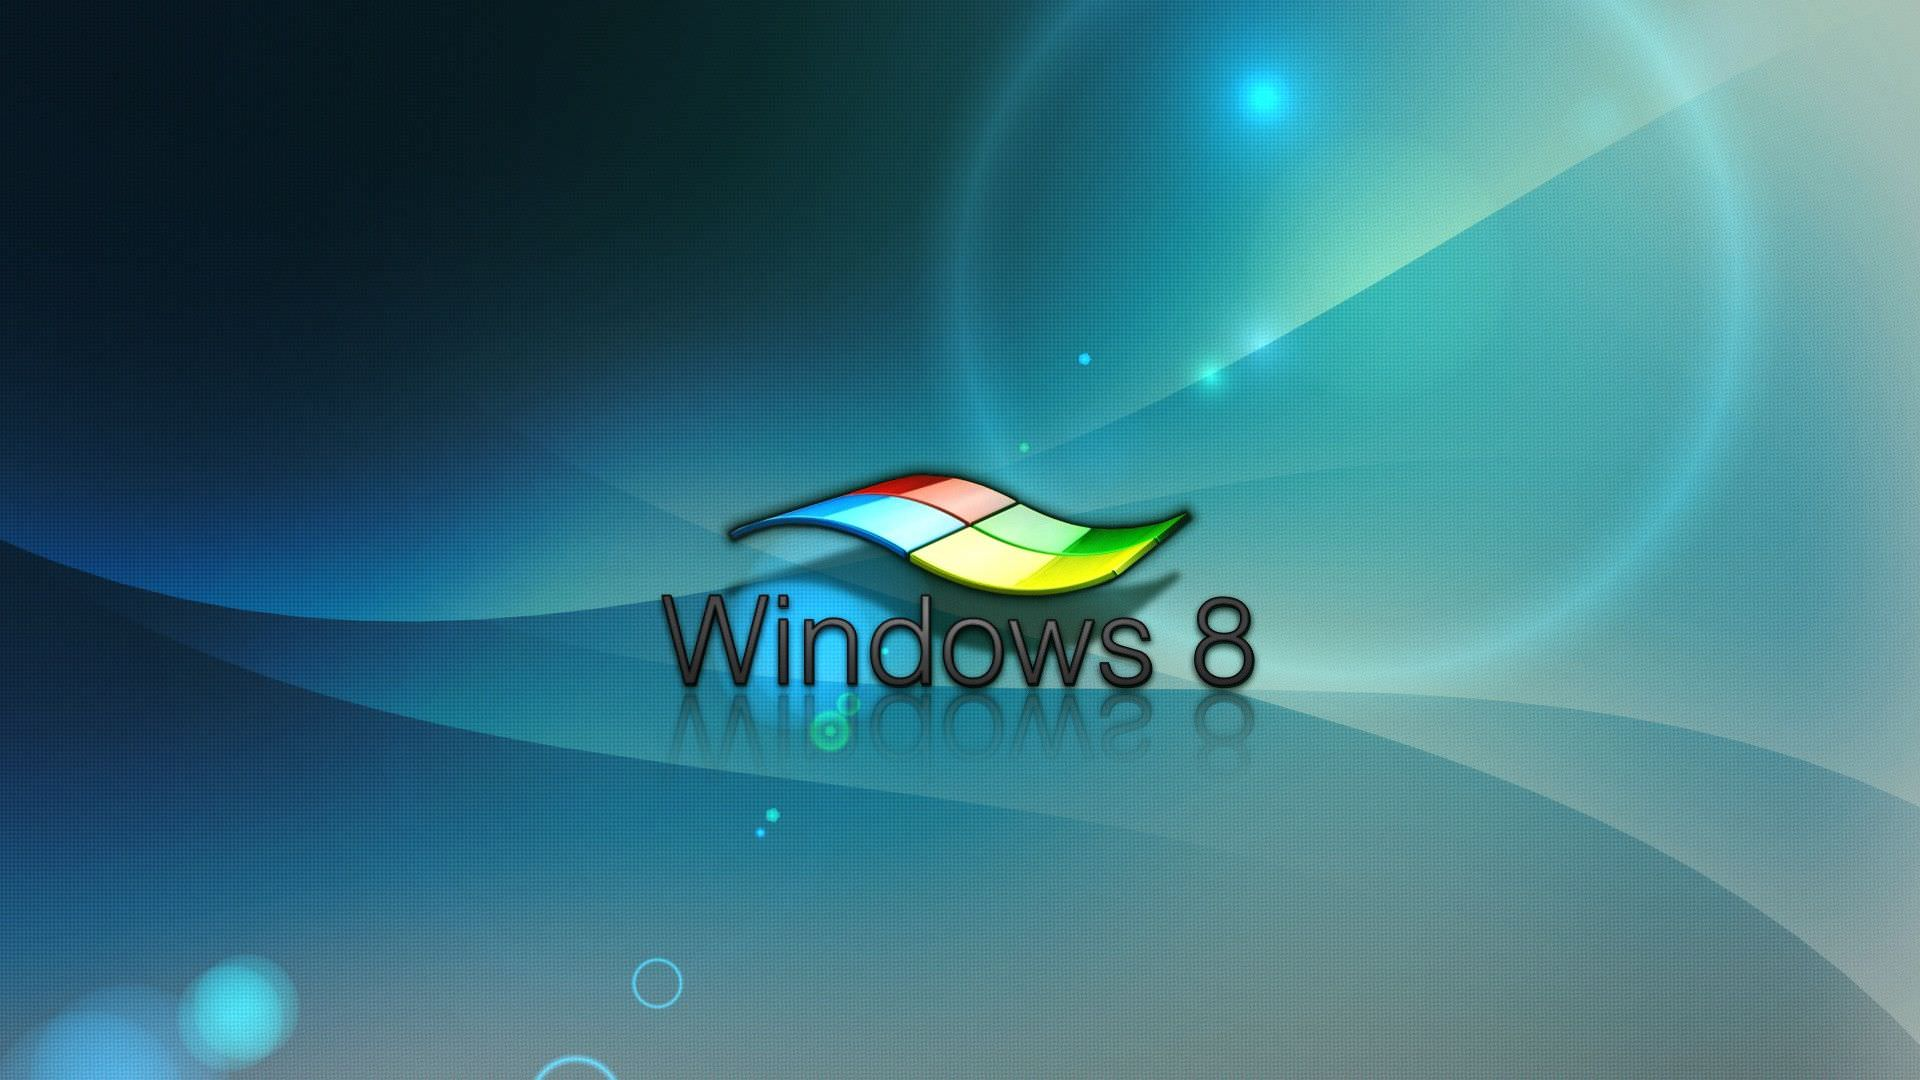 Window 8 3D Image Wallpaper